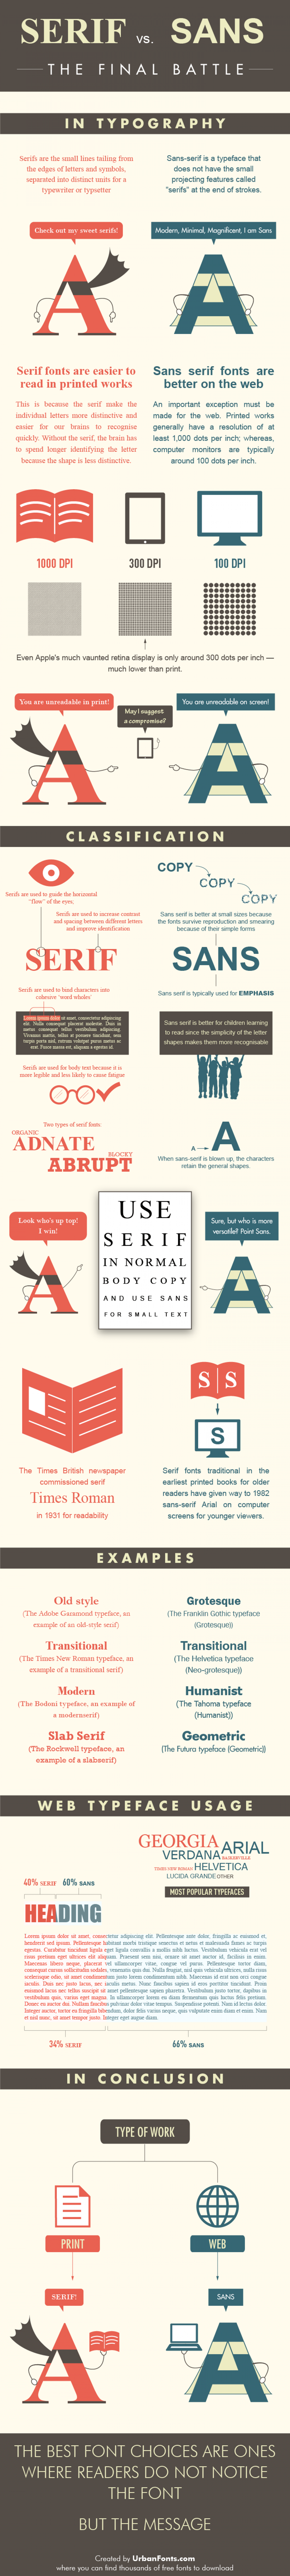 Serif vs Sans: The Final Battle Infographic